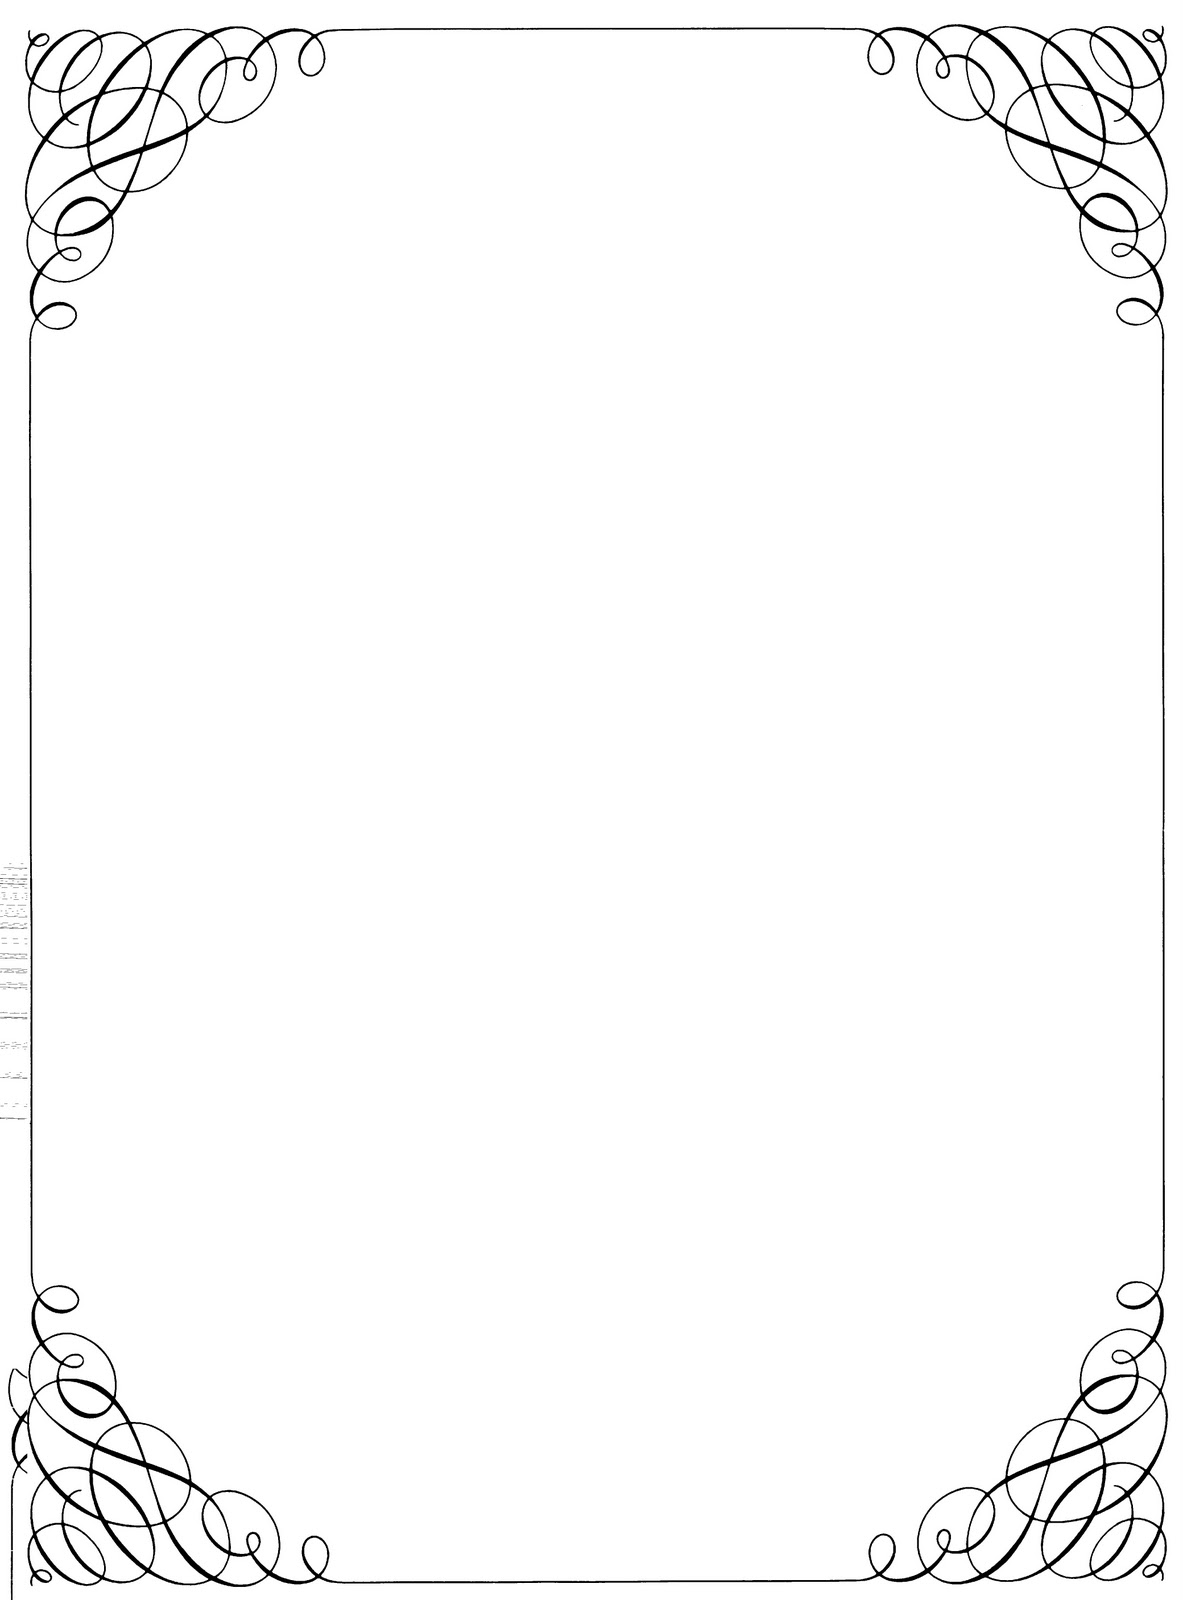 Vintage Borders and Frames Clip Art